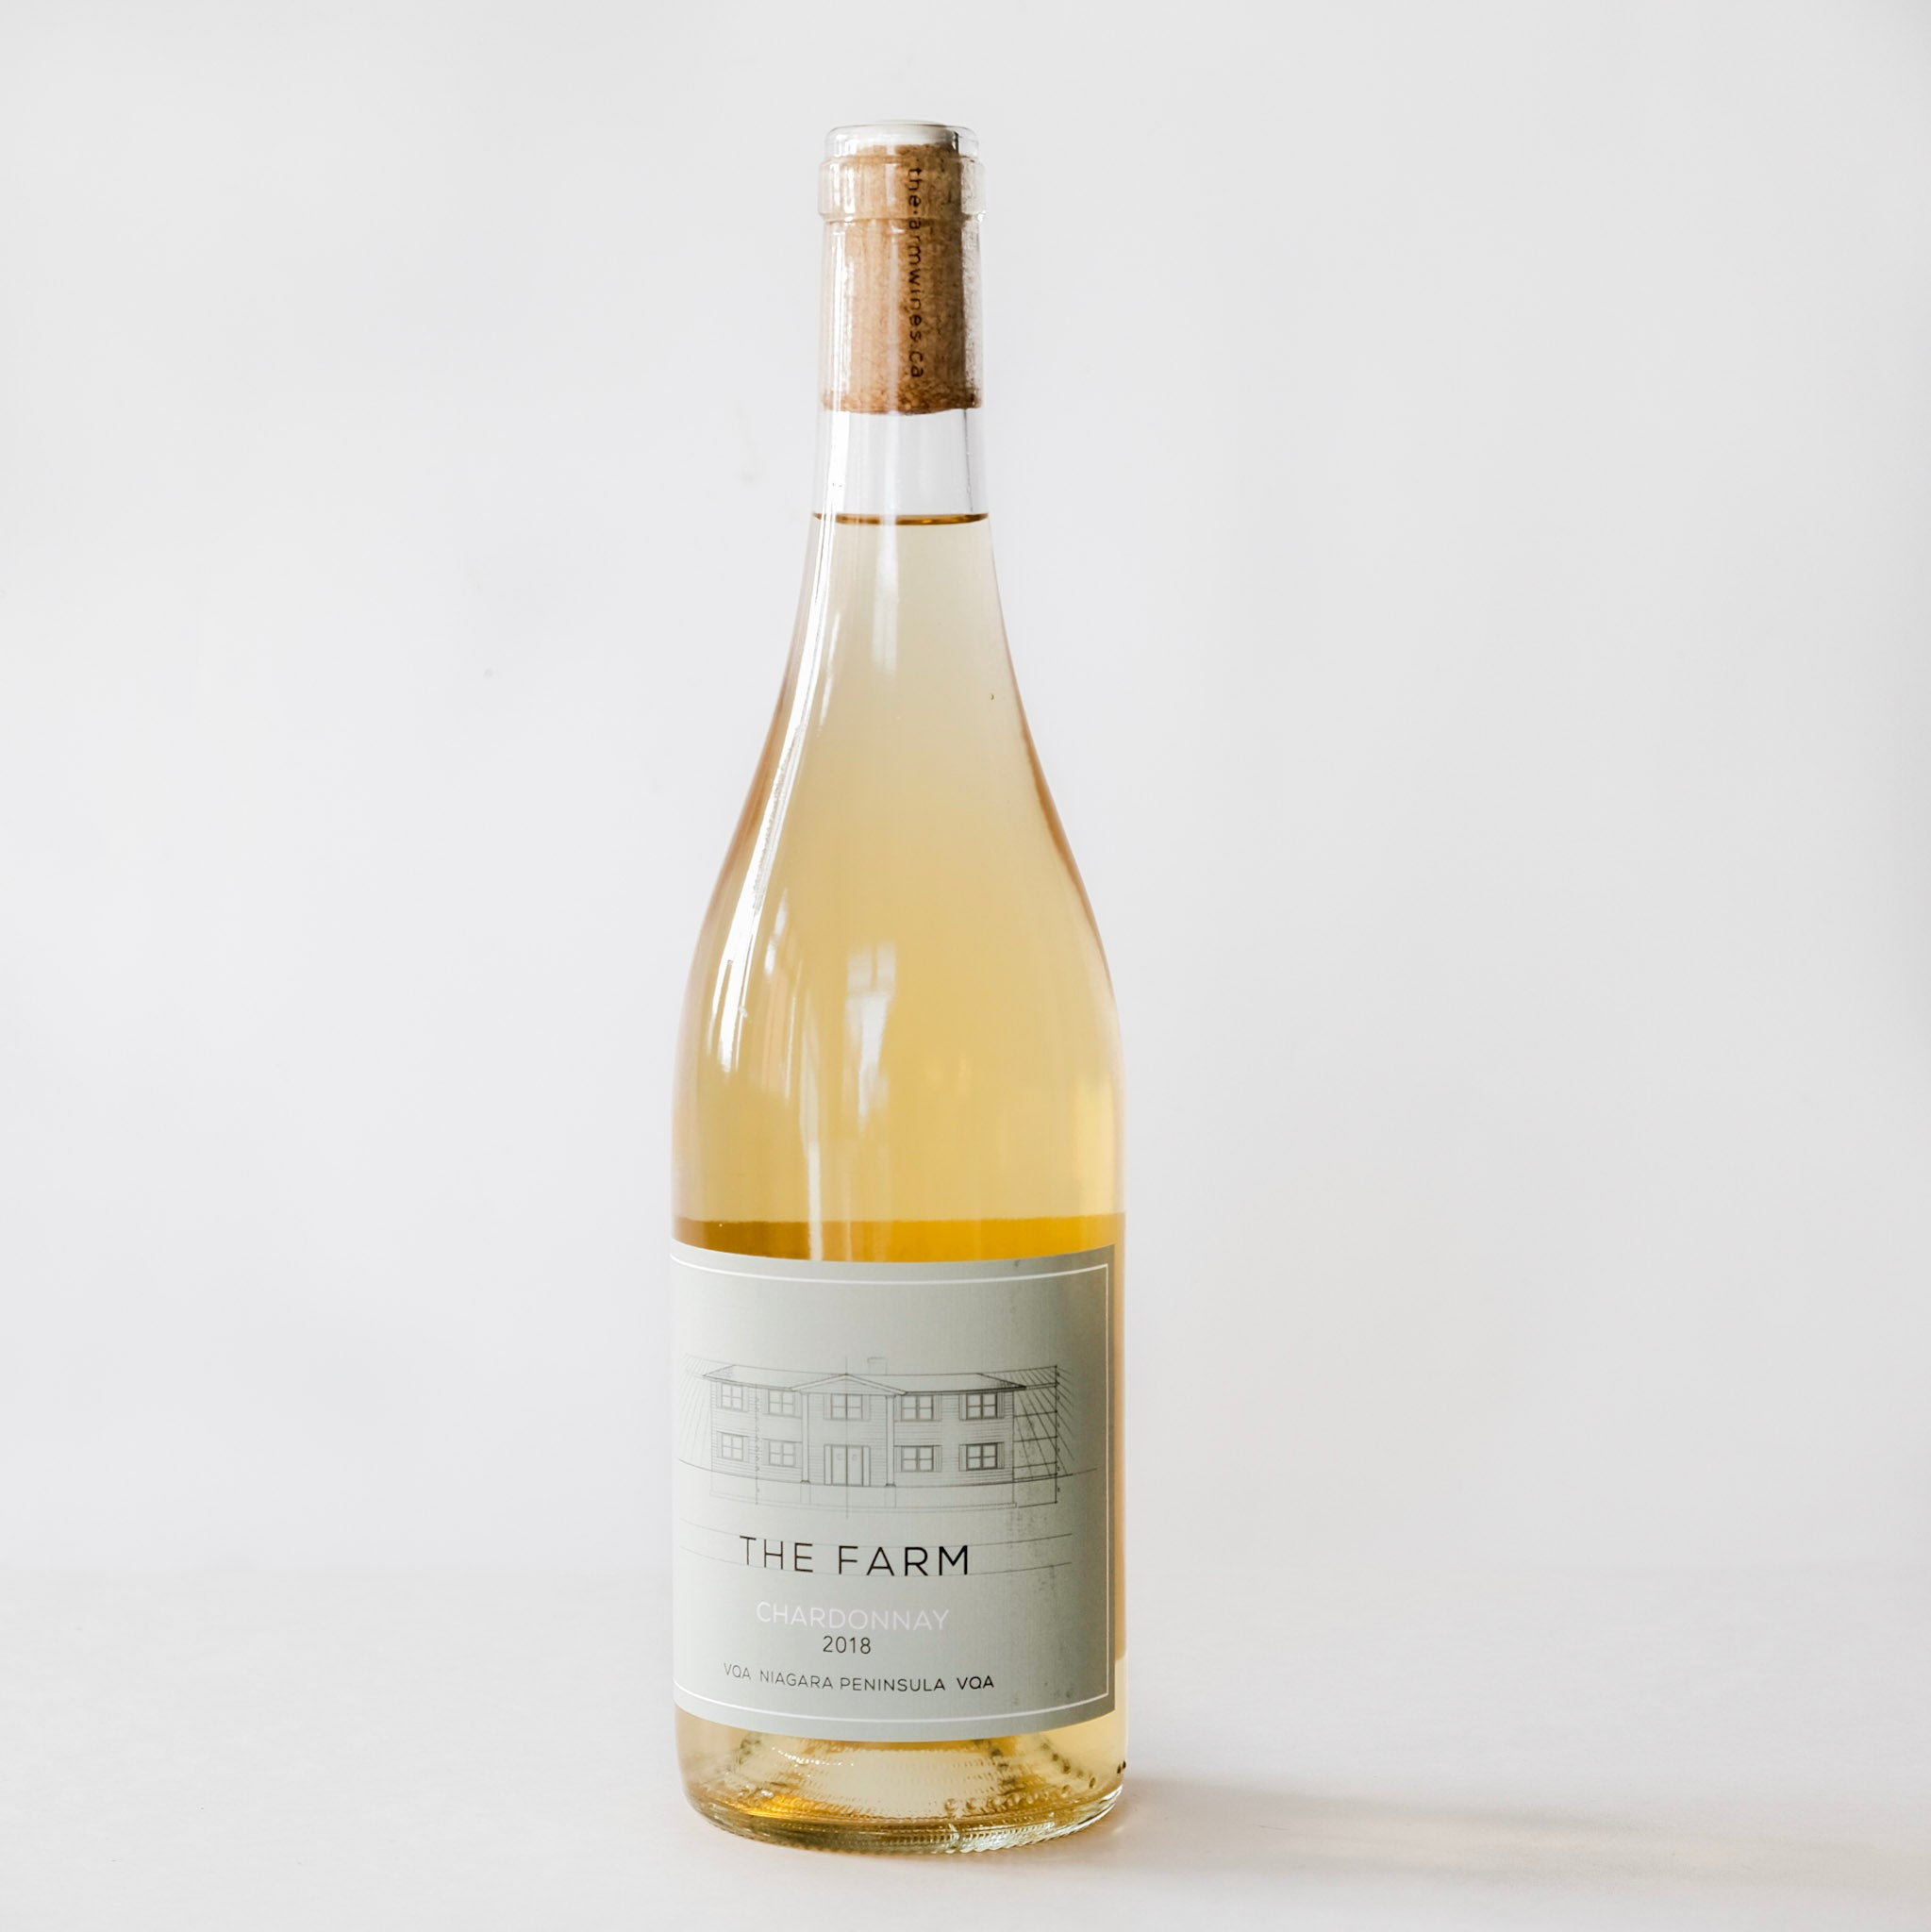 The Farm  2018 Chardonnay